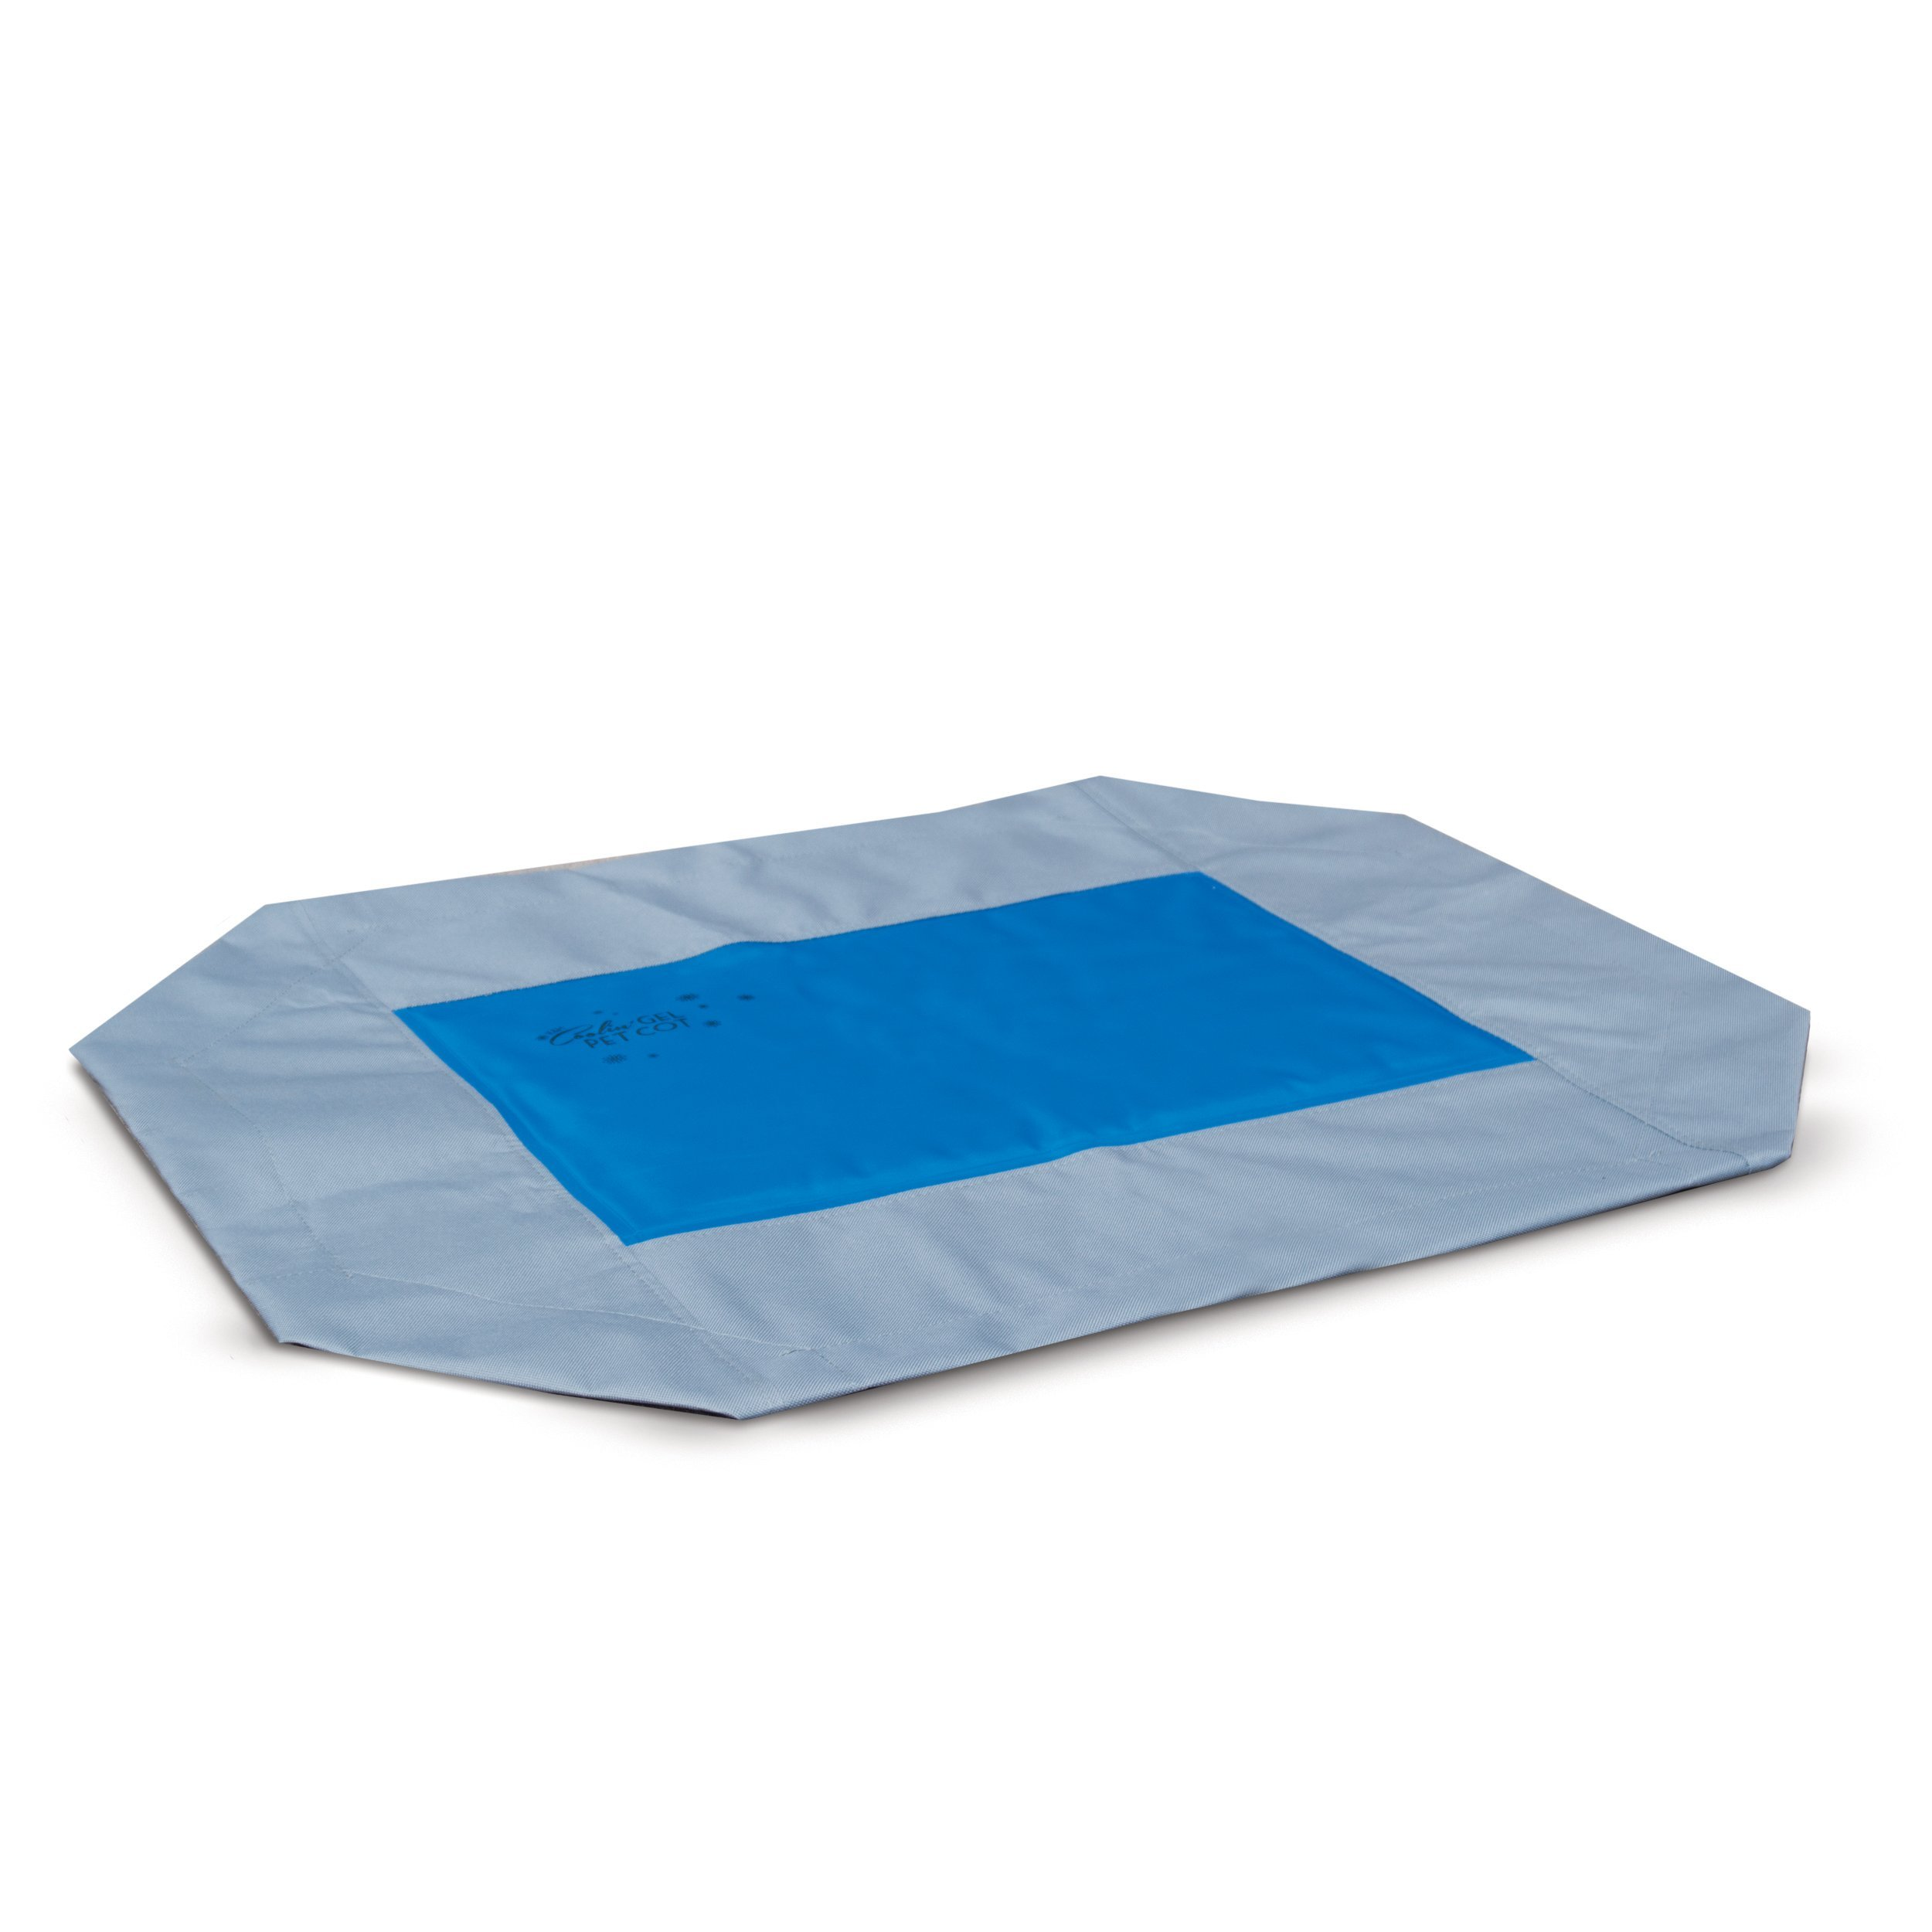 K&H Manufacturing Coolin' Gel Pet Cot Cover Medium Gray/Blue 25-Inch by 32-Inch